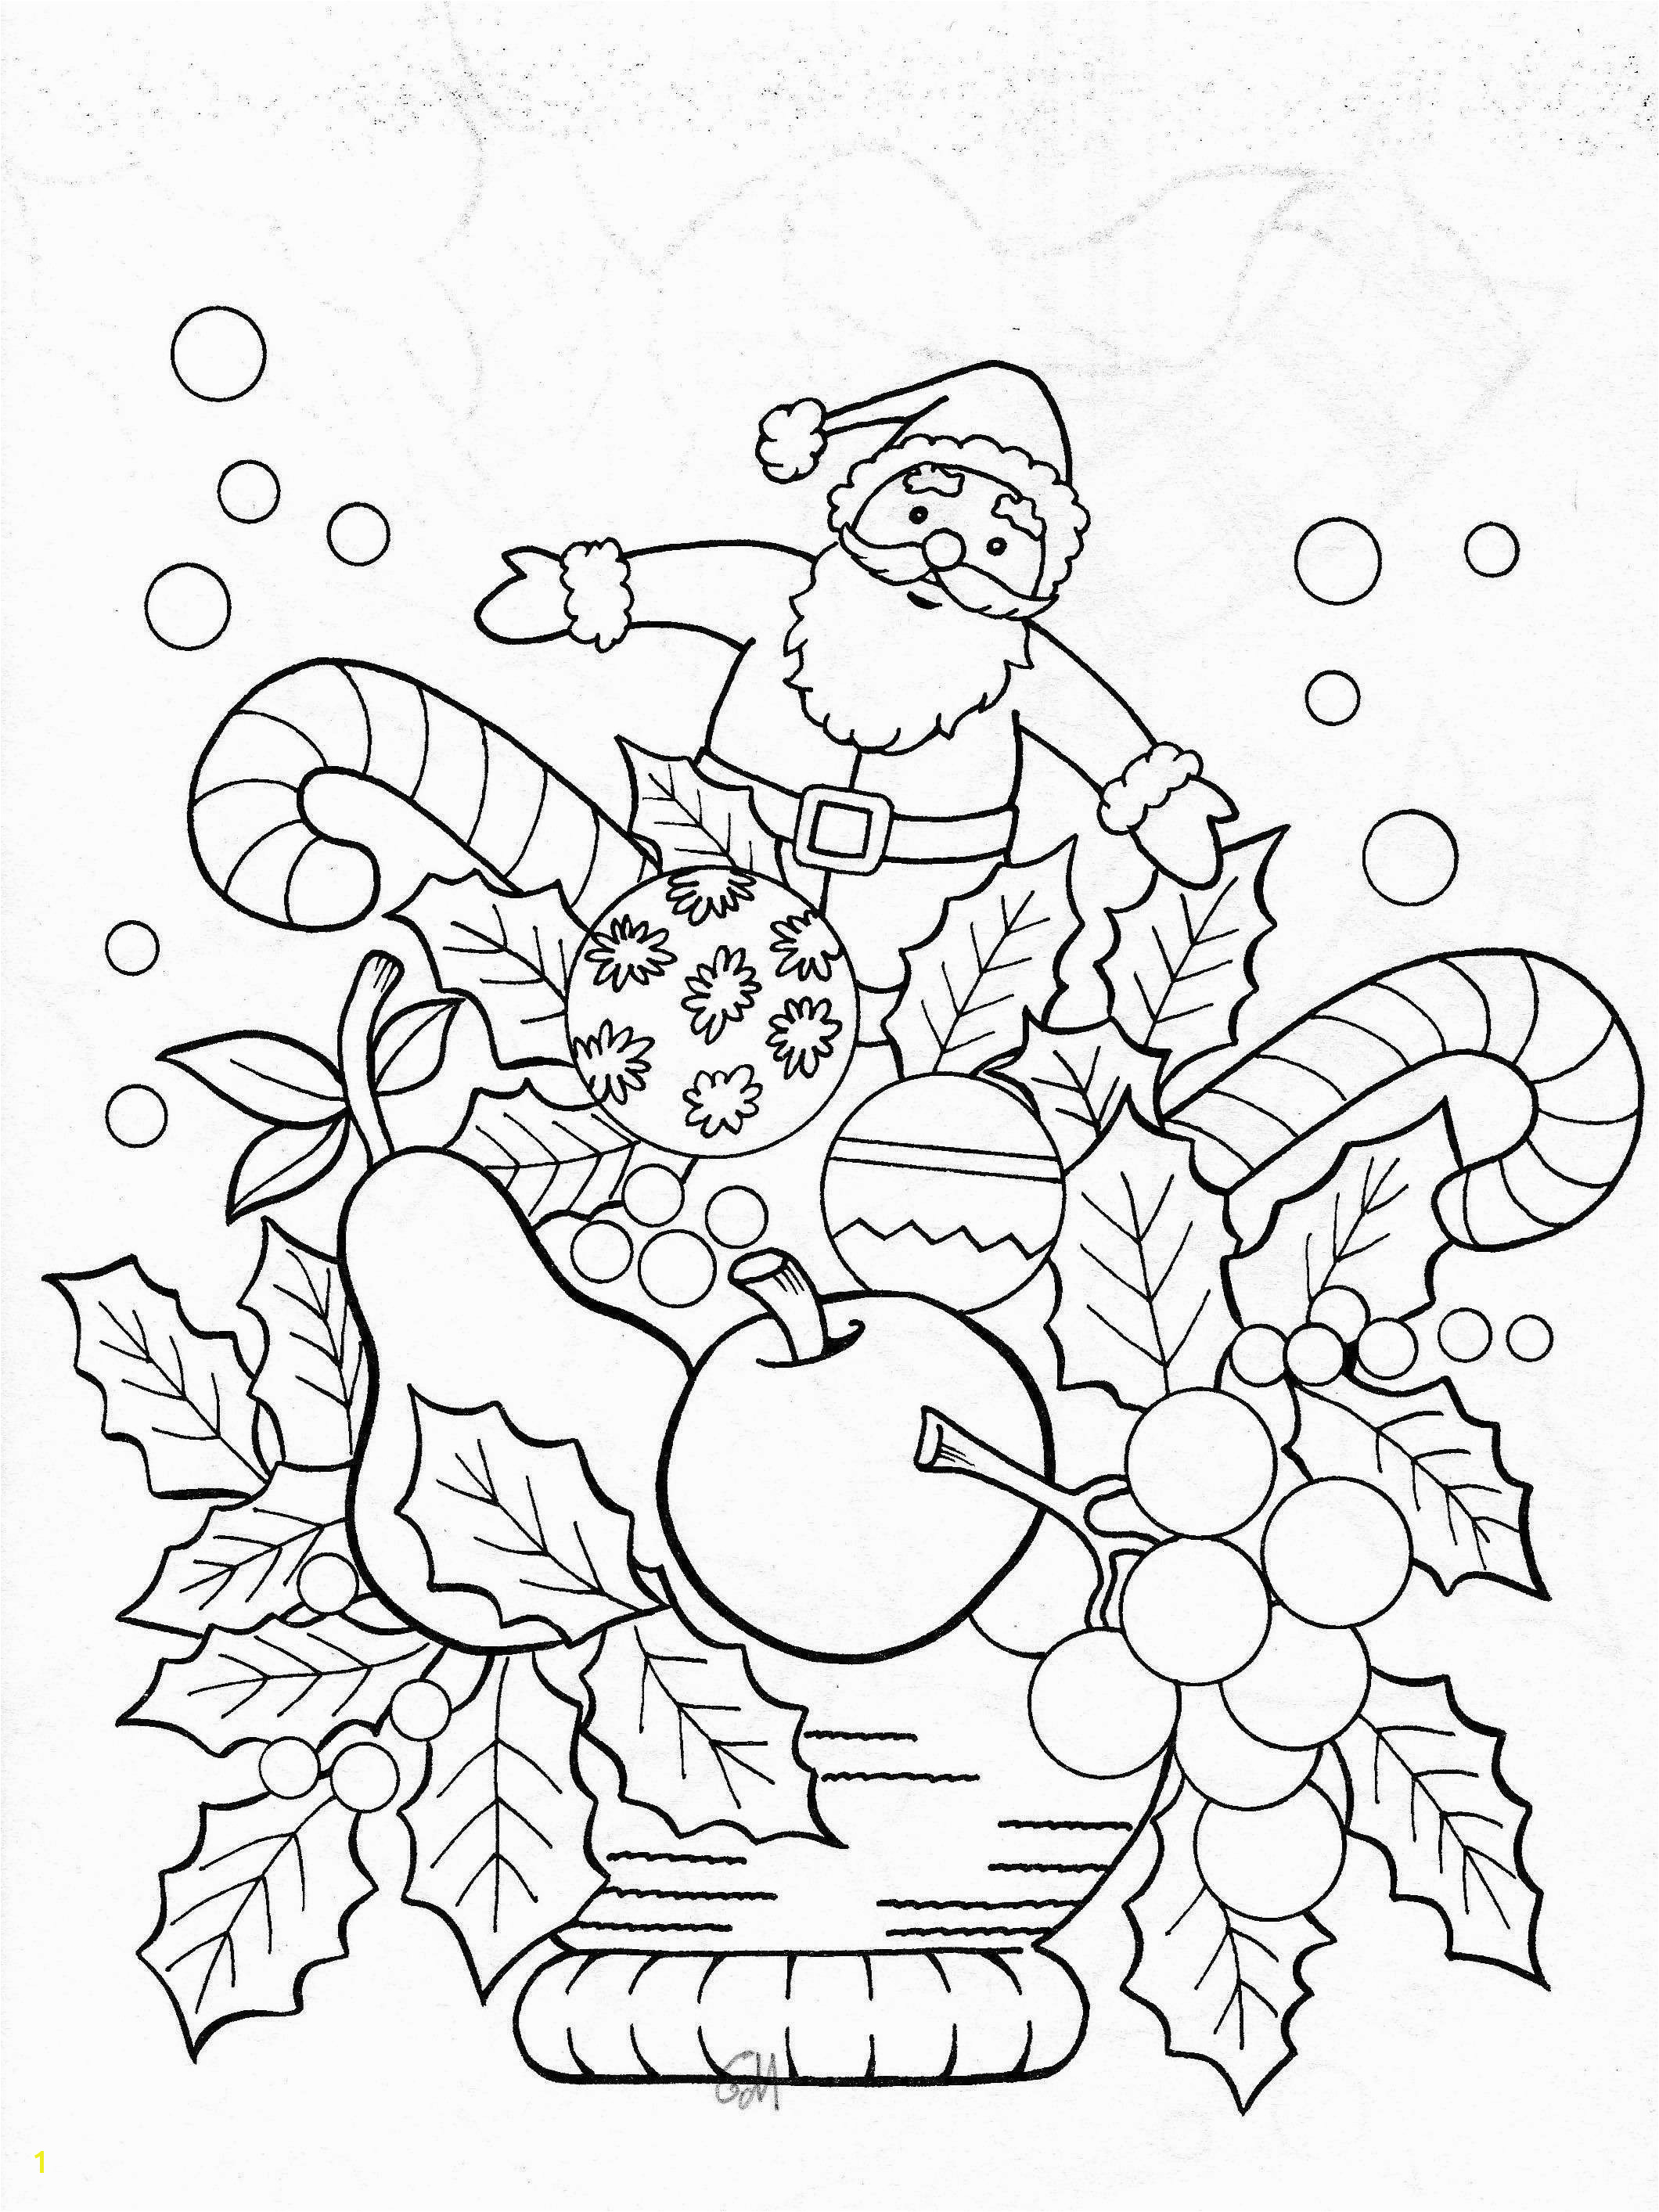 Christmas Coloring Pages for Adults to Print 34 Christmas Coloring Pages to Print F